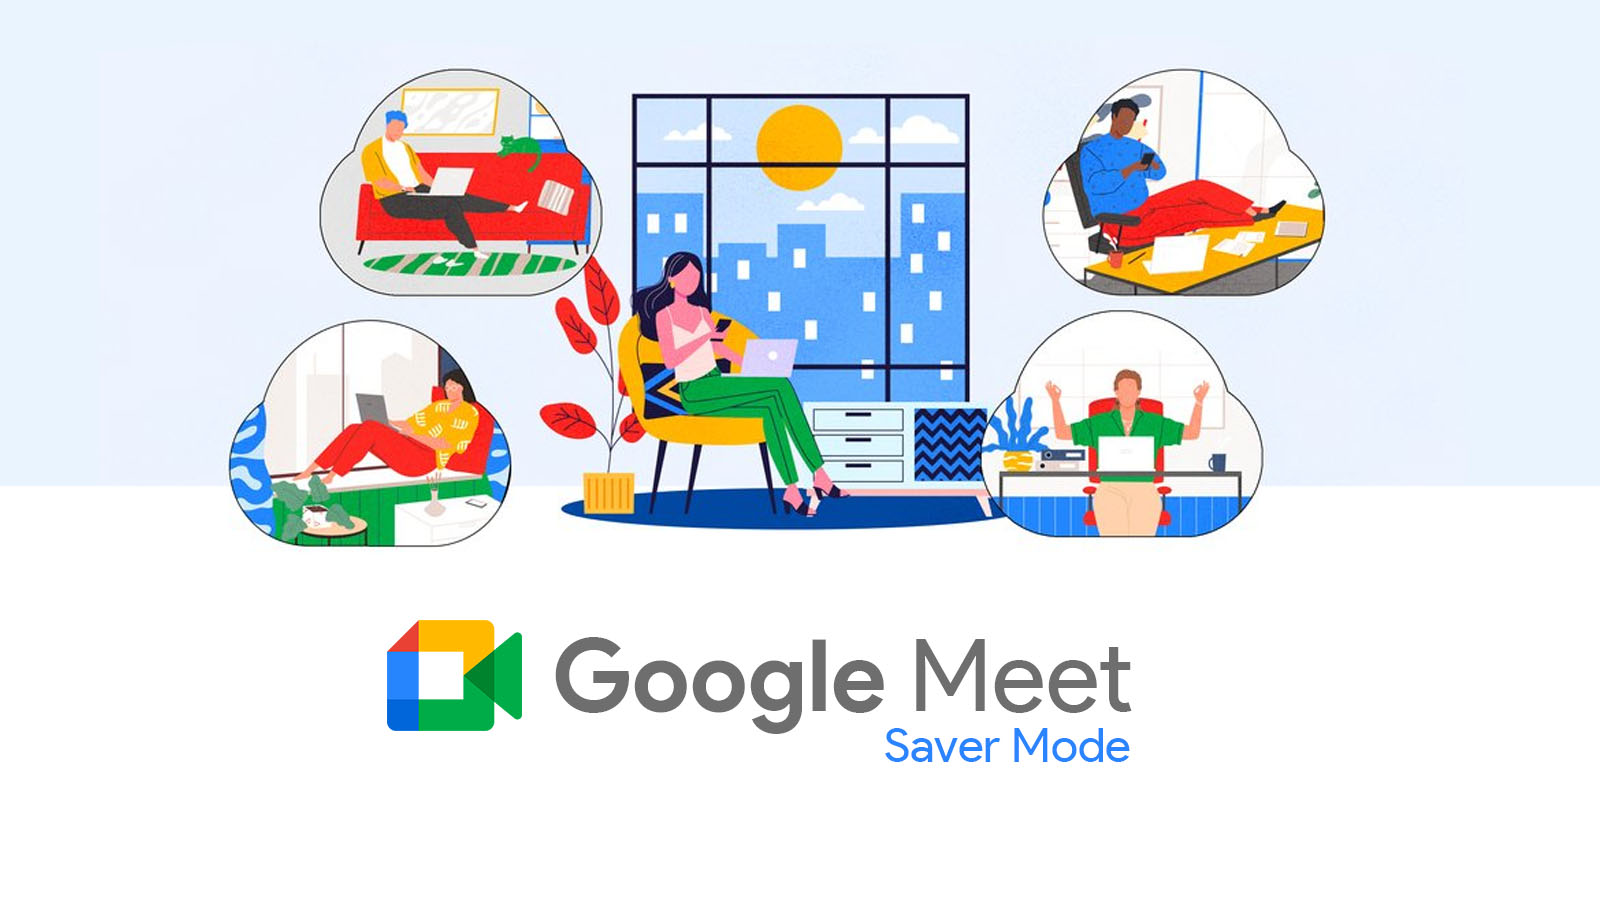 Google Meet saver mode lets you join meetings even when your battery is low